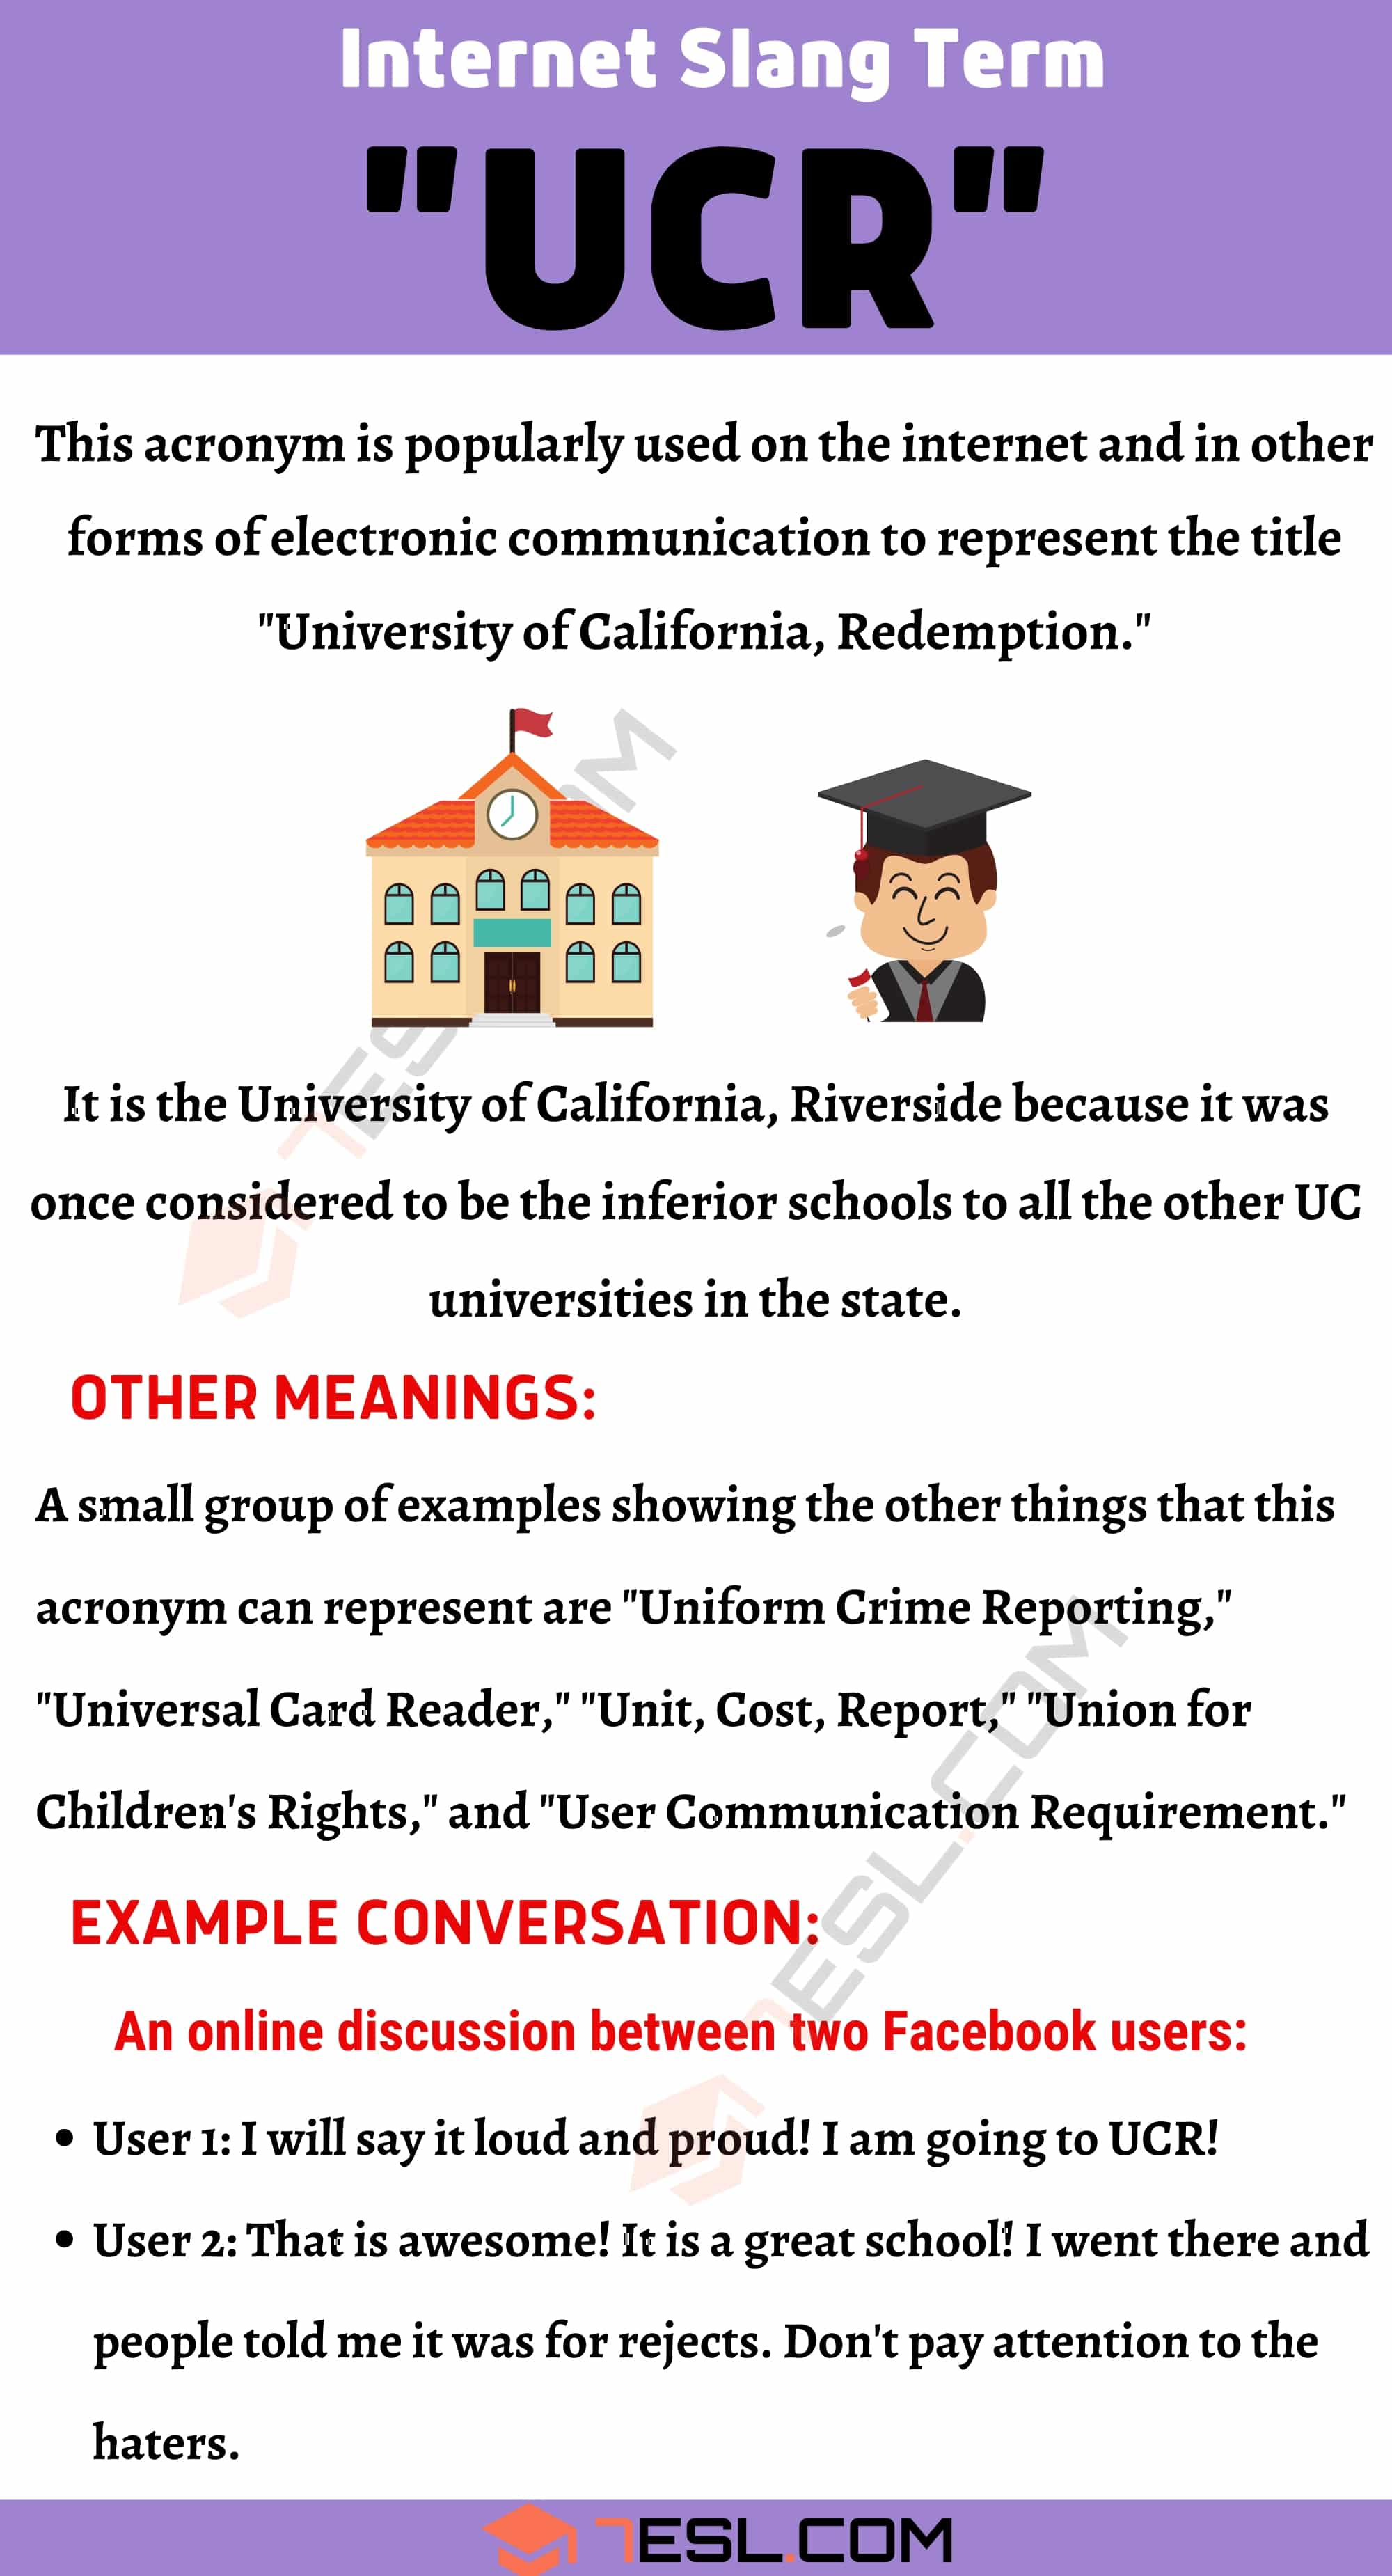 """UCR Meaning: How Do You Define the Acronym """"UCR""""?"""